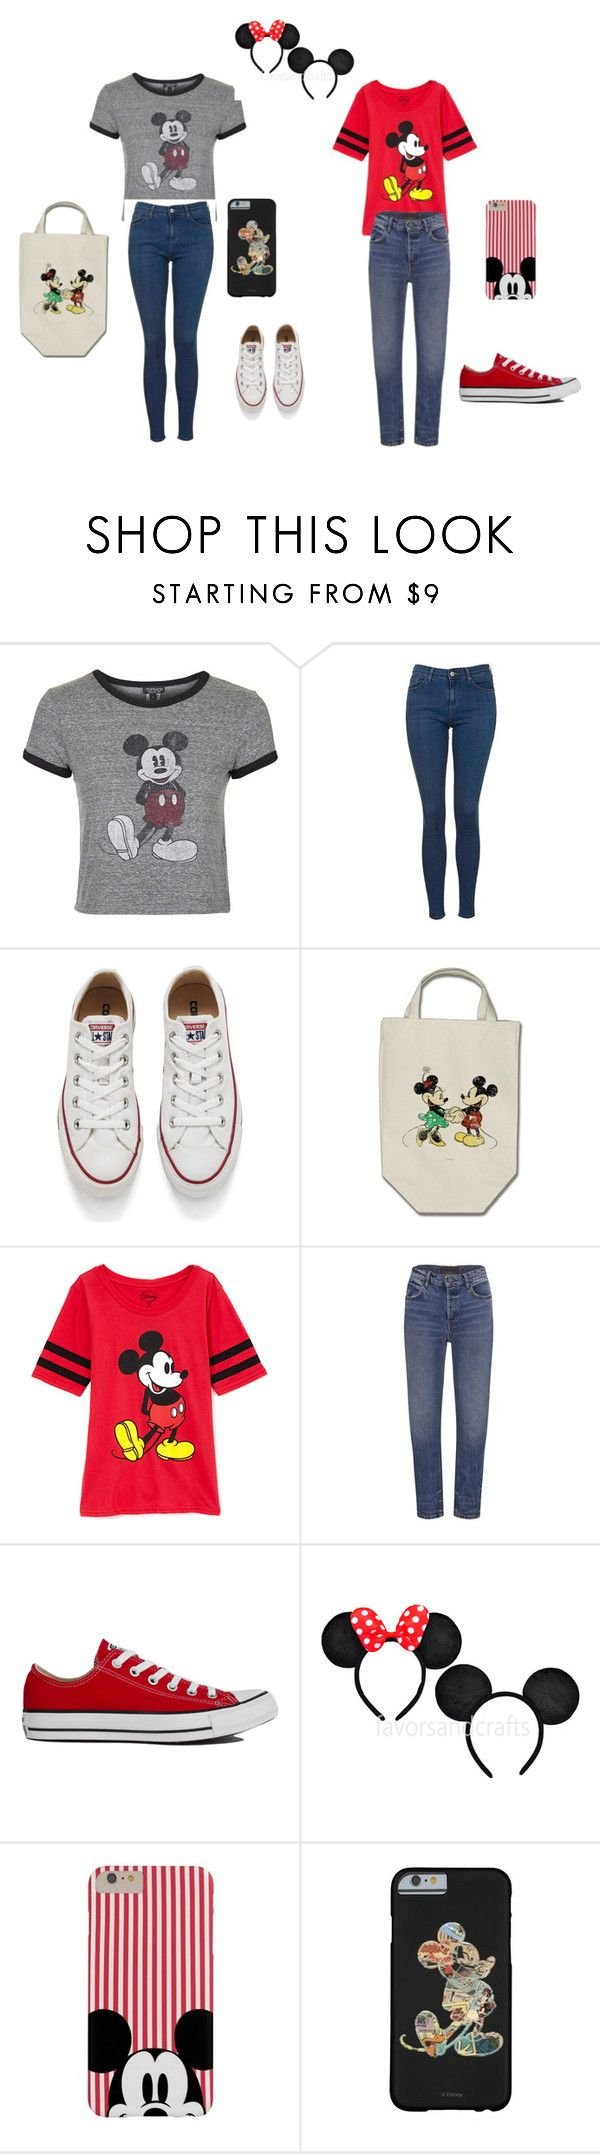 """""""a date at disney land with jr. (got7)"""" by exsonyeodan717 ❤ liked on Polyvore featuring Topshop, Converse, Alexander Wang, women's clothing, women, female, woman, misses and juniors"""